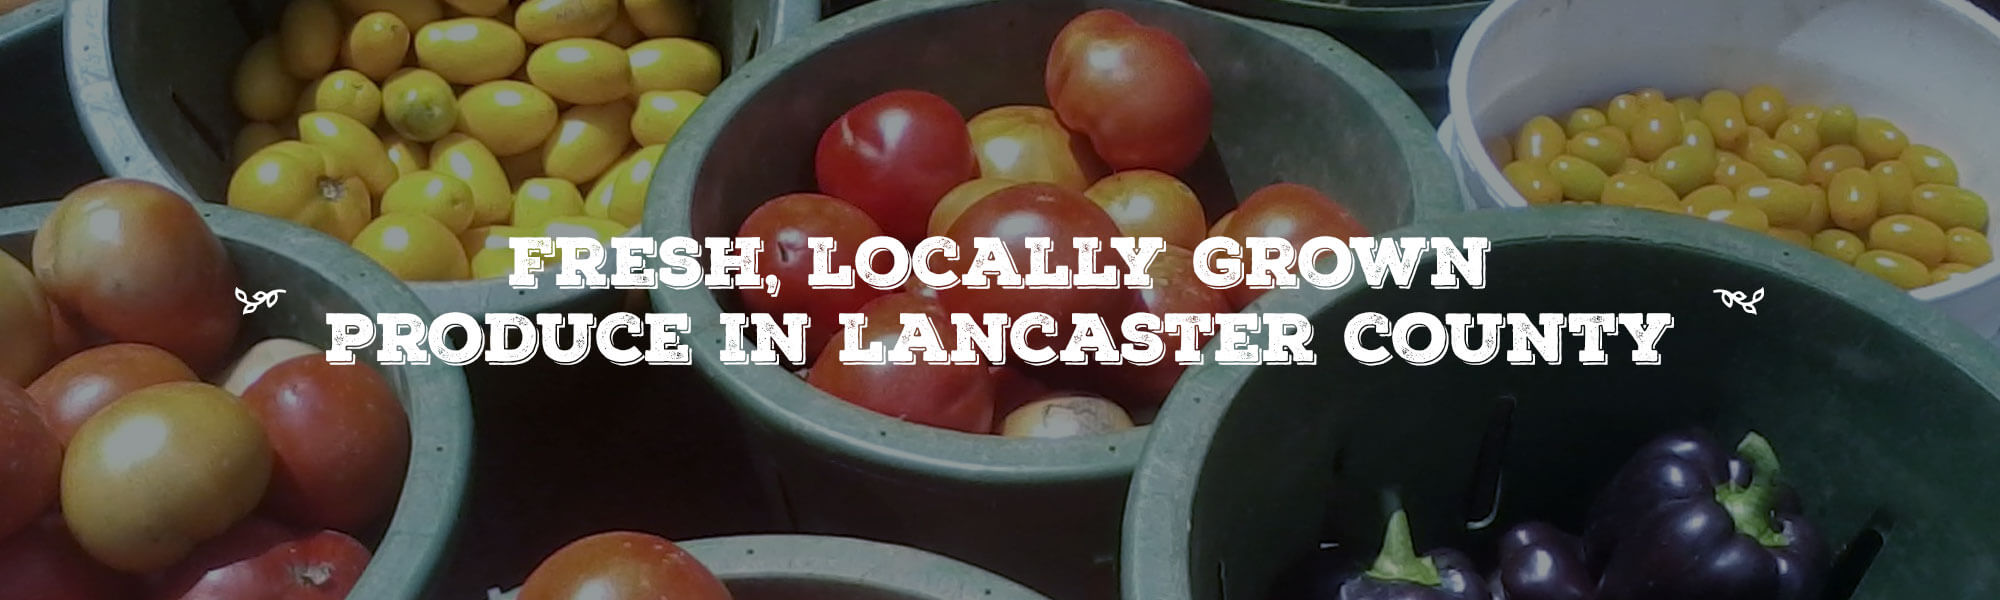 Fresh, Locally Grown Produce In Lancaster County overlay on image of baskets of a variety of different tomatoes